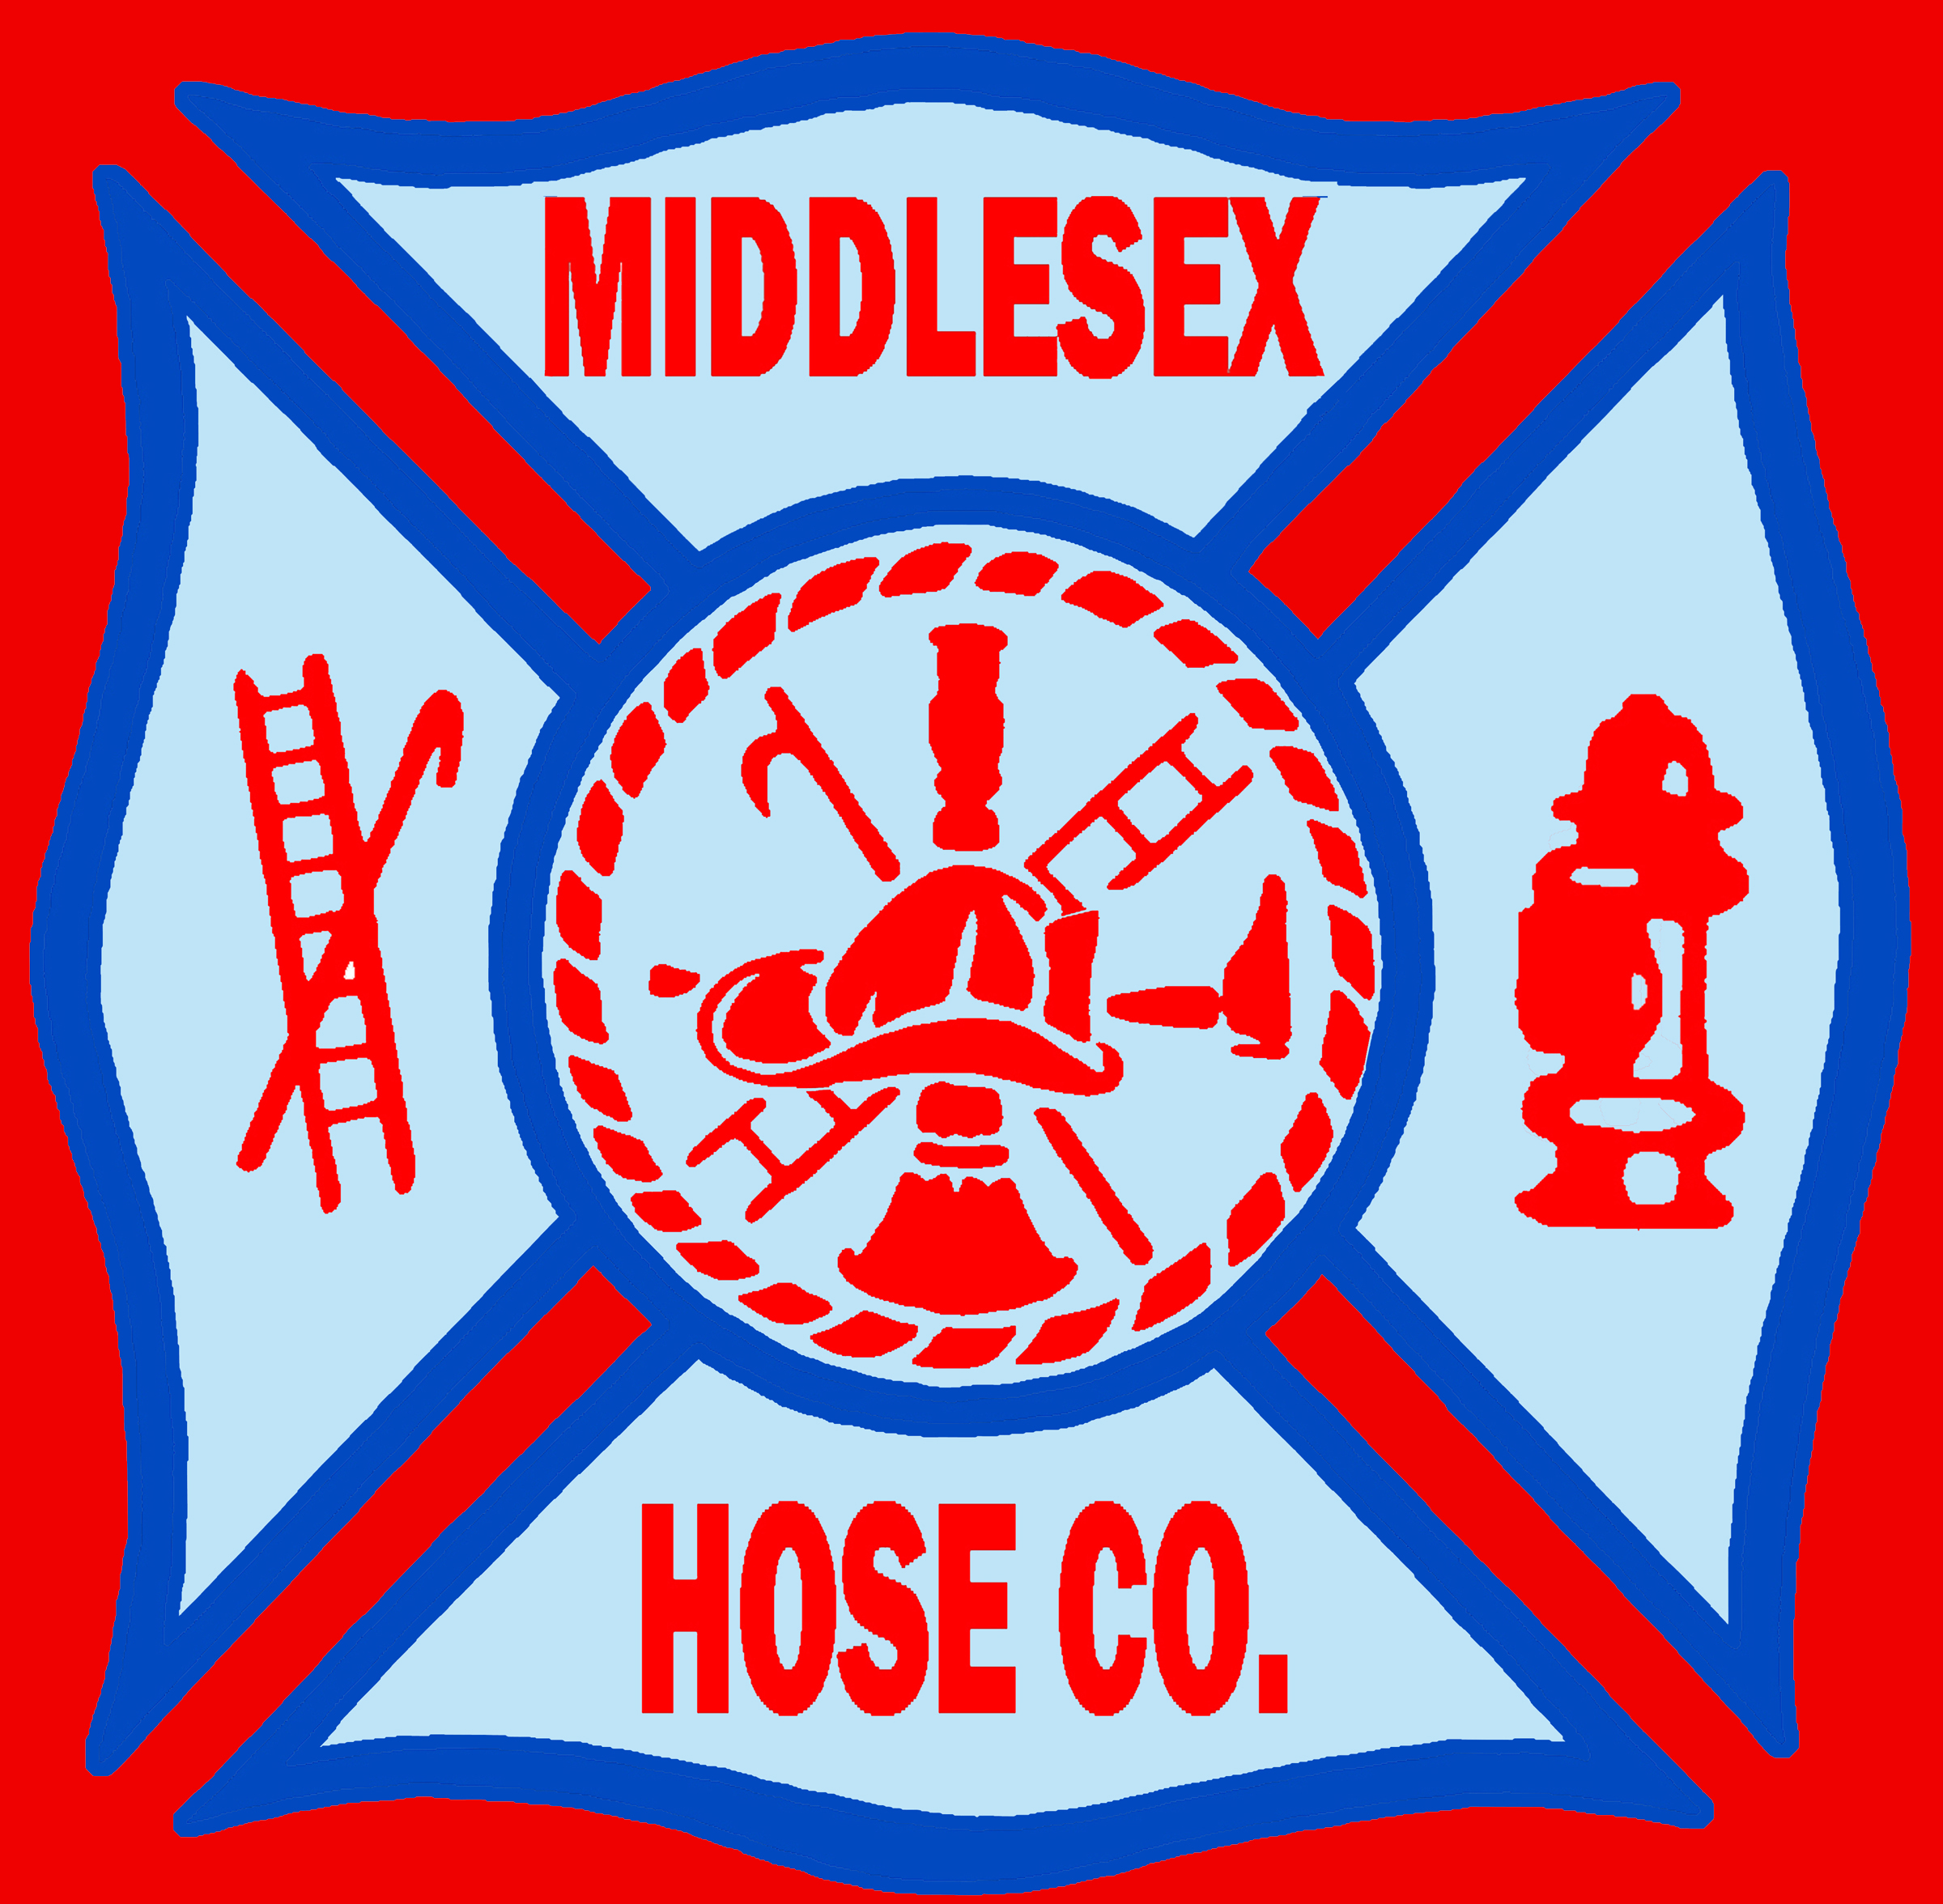 Middlesex Hose